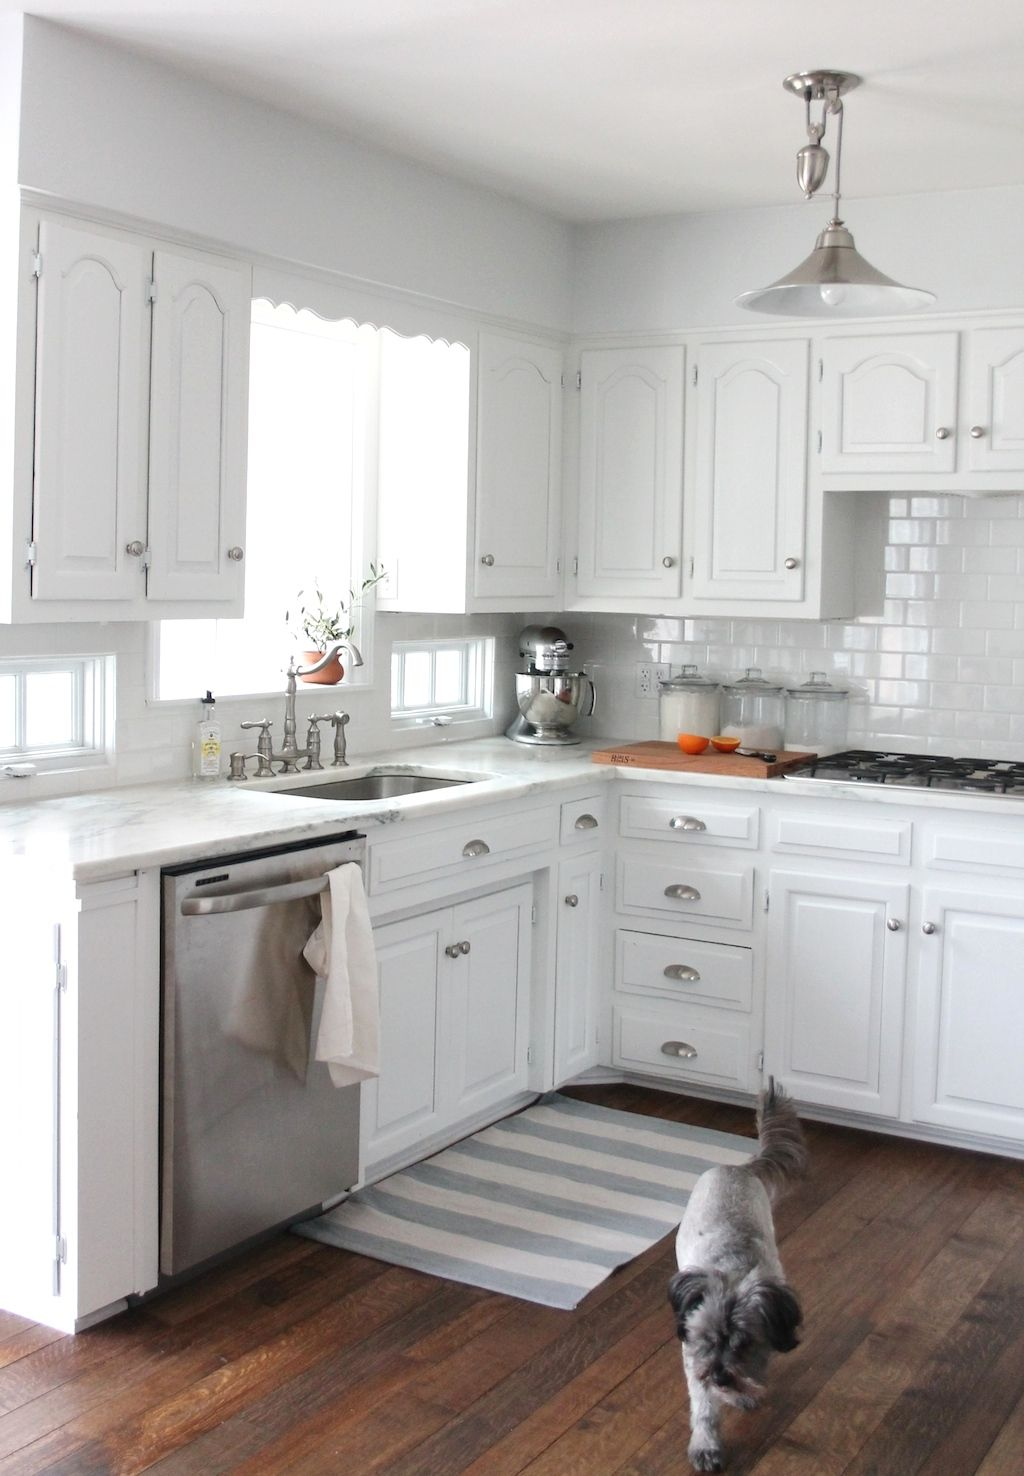 Kitchen Pics With White Cabinets We Did It Our Kitchen Remodel Easy Diy Projects And